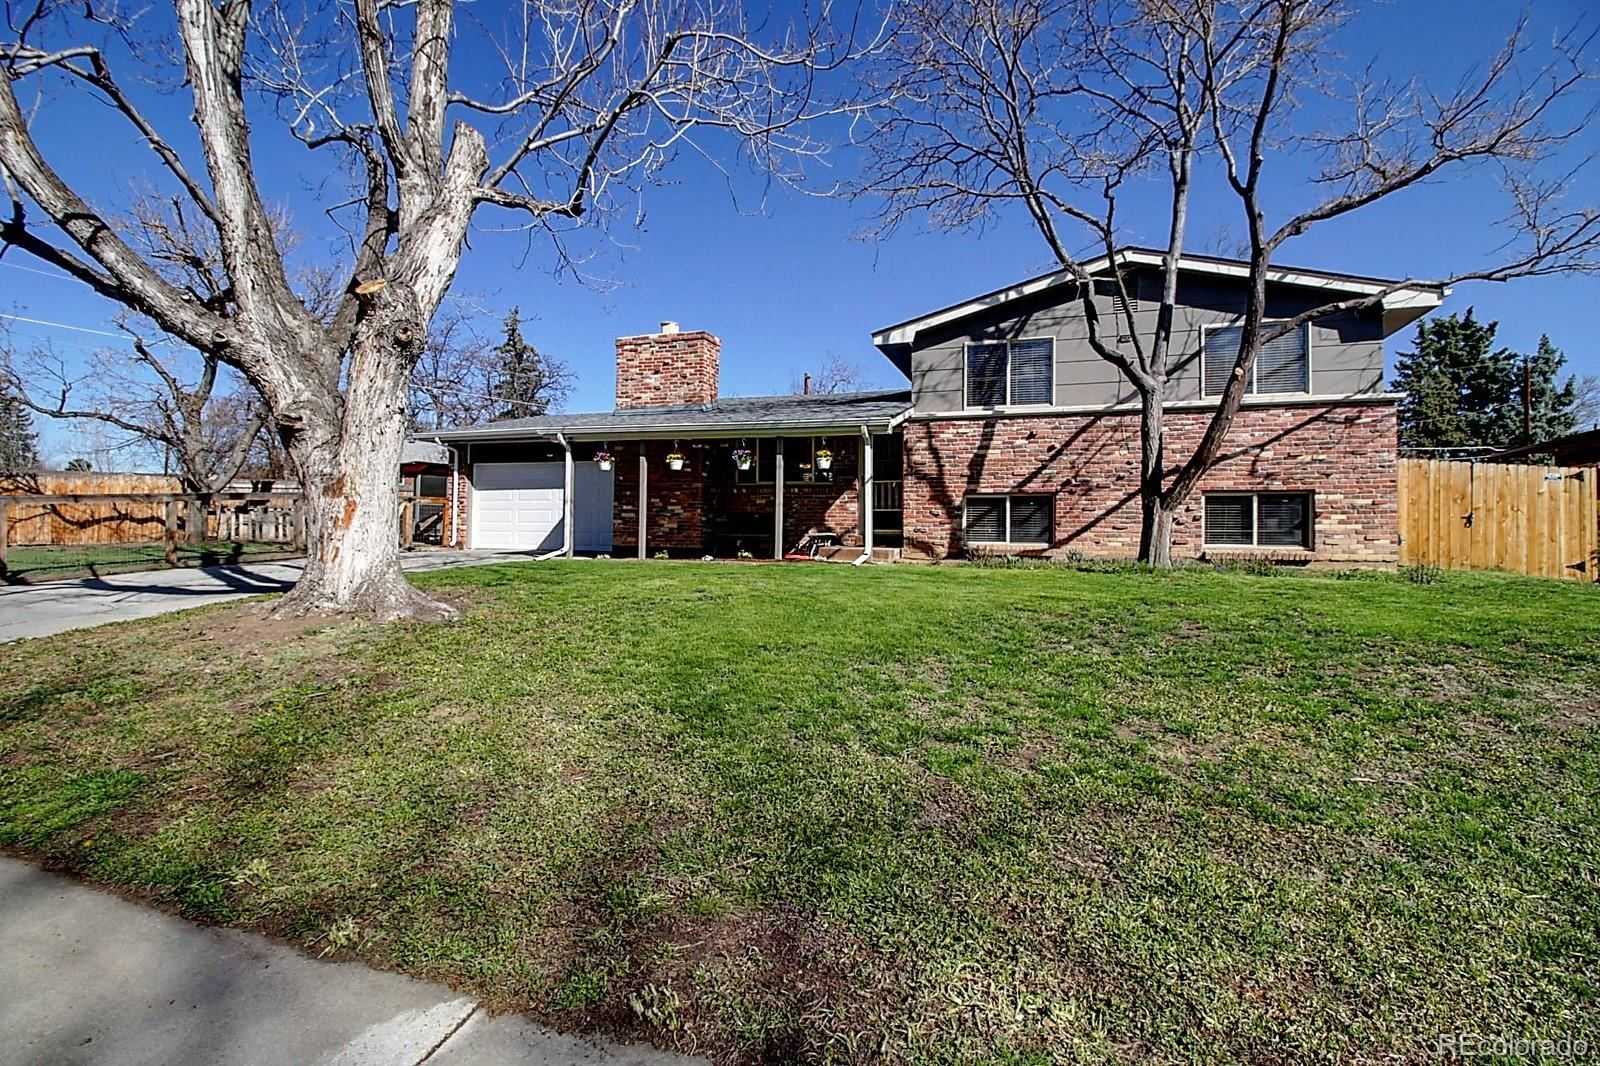 12985 W 24th Place, Golden, CO 80401 - #: 8405675